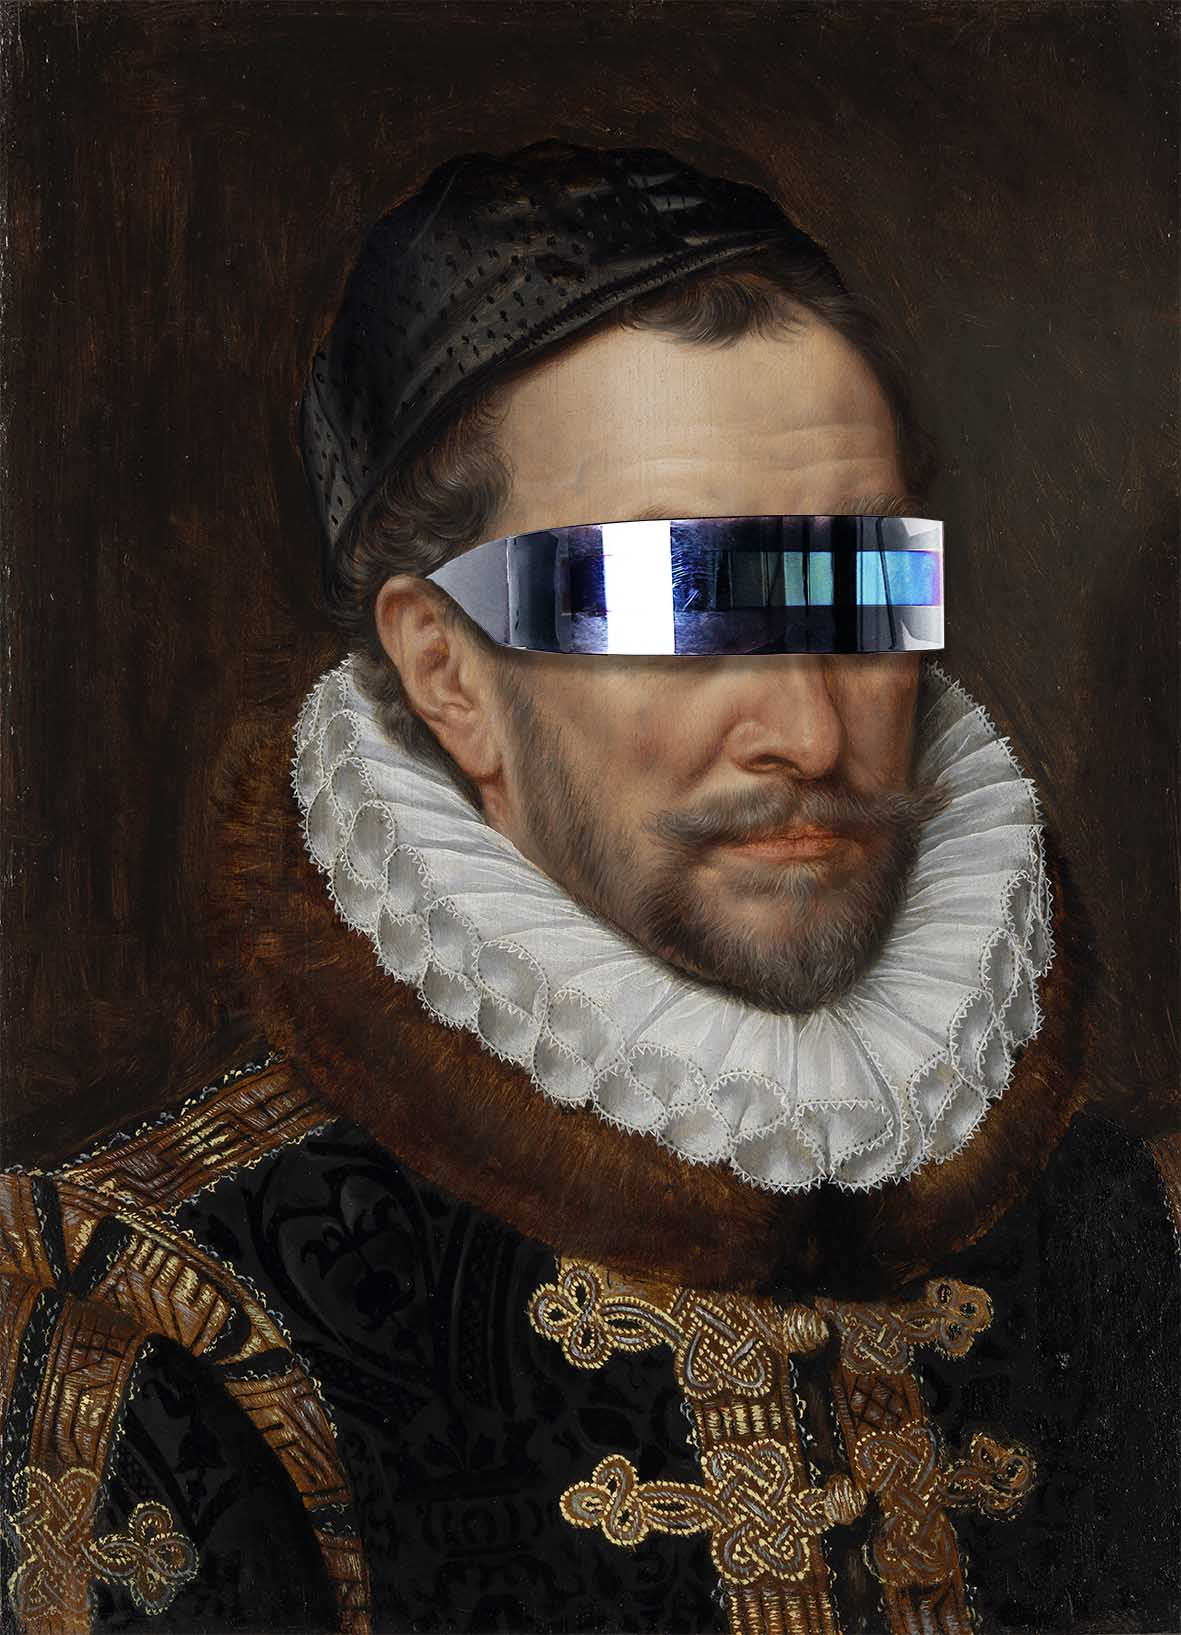 Willem I, Prince of Orange | Special edition Art Print on Aluminium